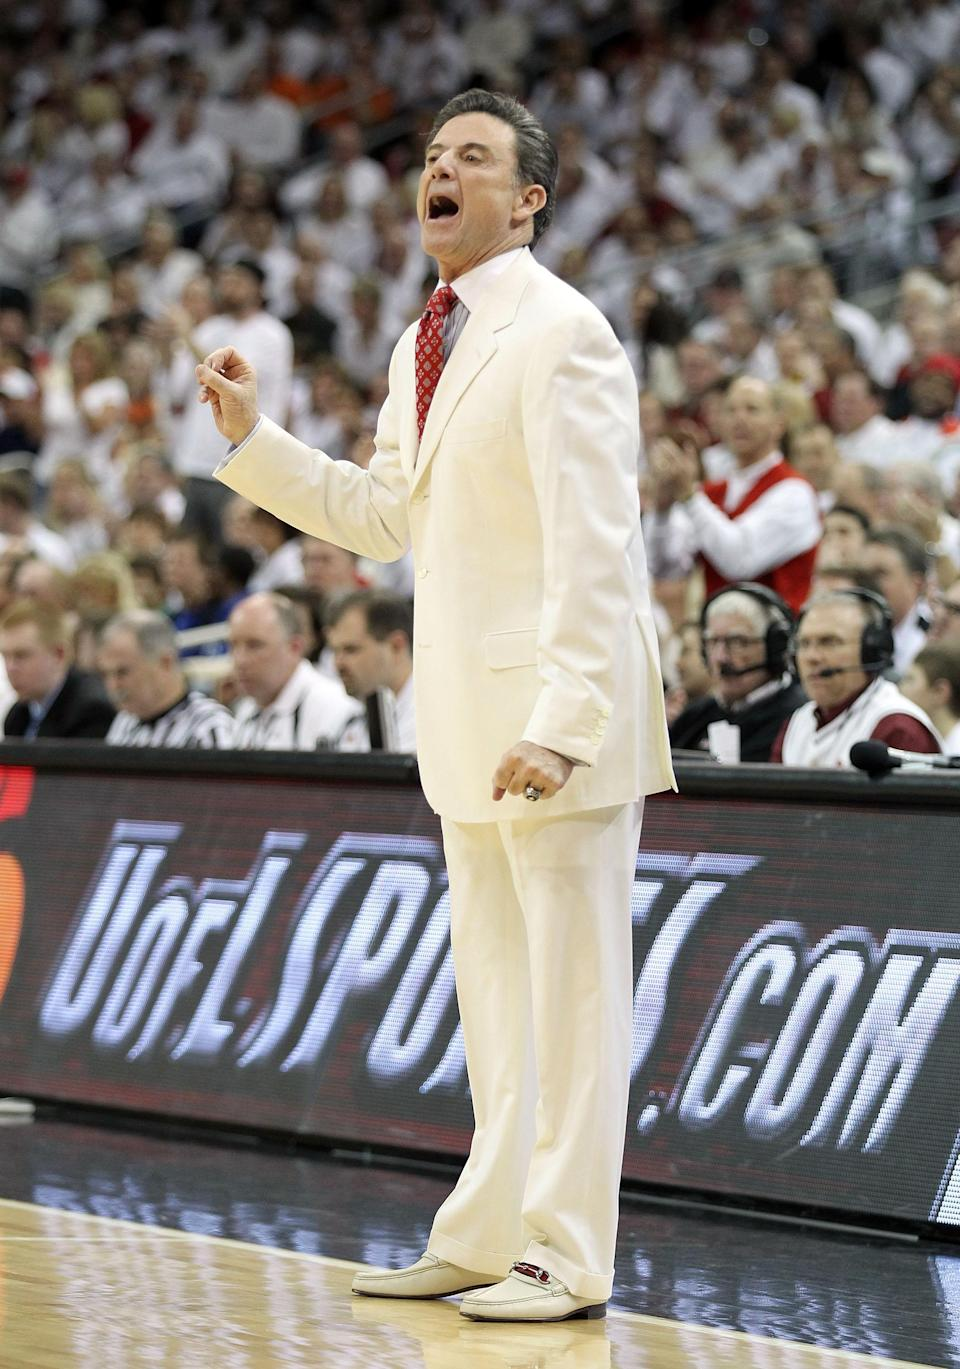 LOUISVILLE, KY - FEBRUARY 13: Rick Pitino the head coach of the Louisville Cardinals gives instructions to his team during the Big East Conference game against the Syracuse Orange at KFC YUM! Center on February 13, 2012 in Louisville, Kentucky. (Photo by Andy Lyons/Getty Images)